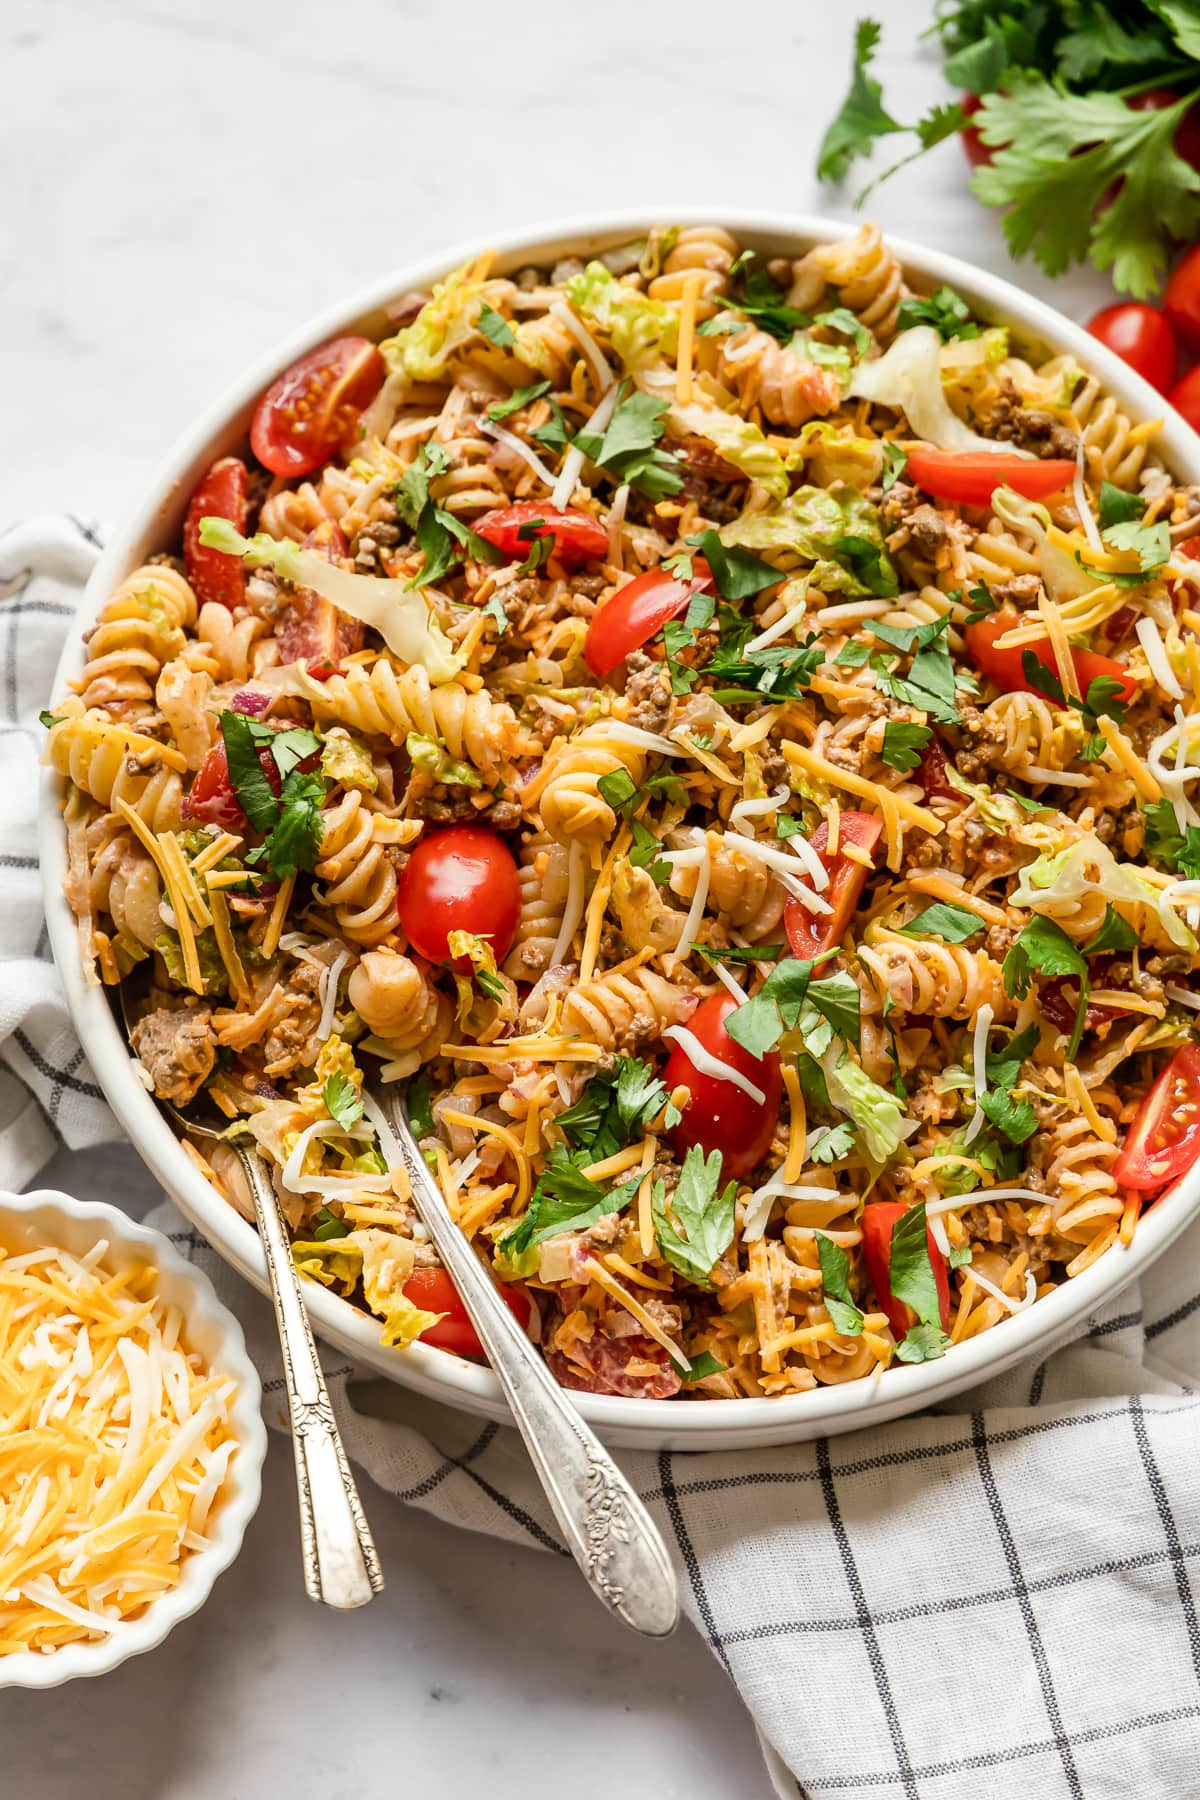 Taco pasta salad topped with shredded cheese and tomatoes.